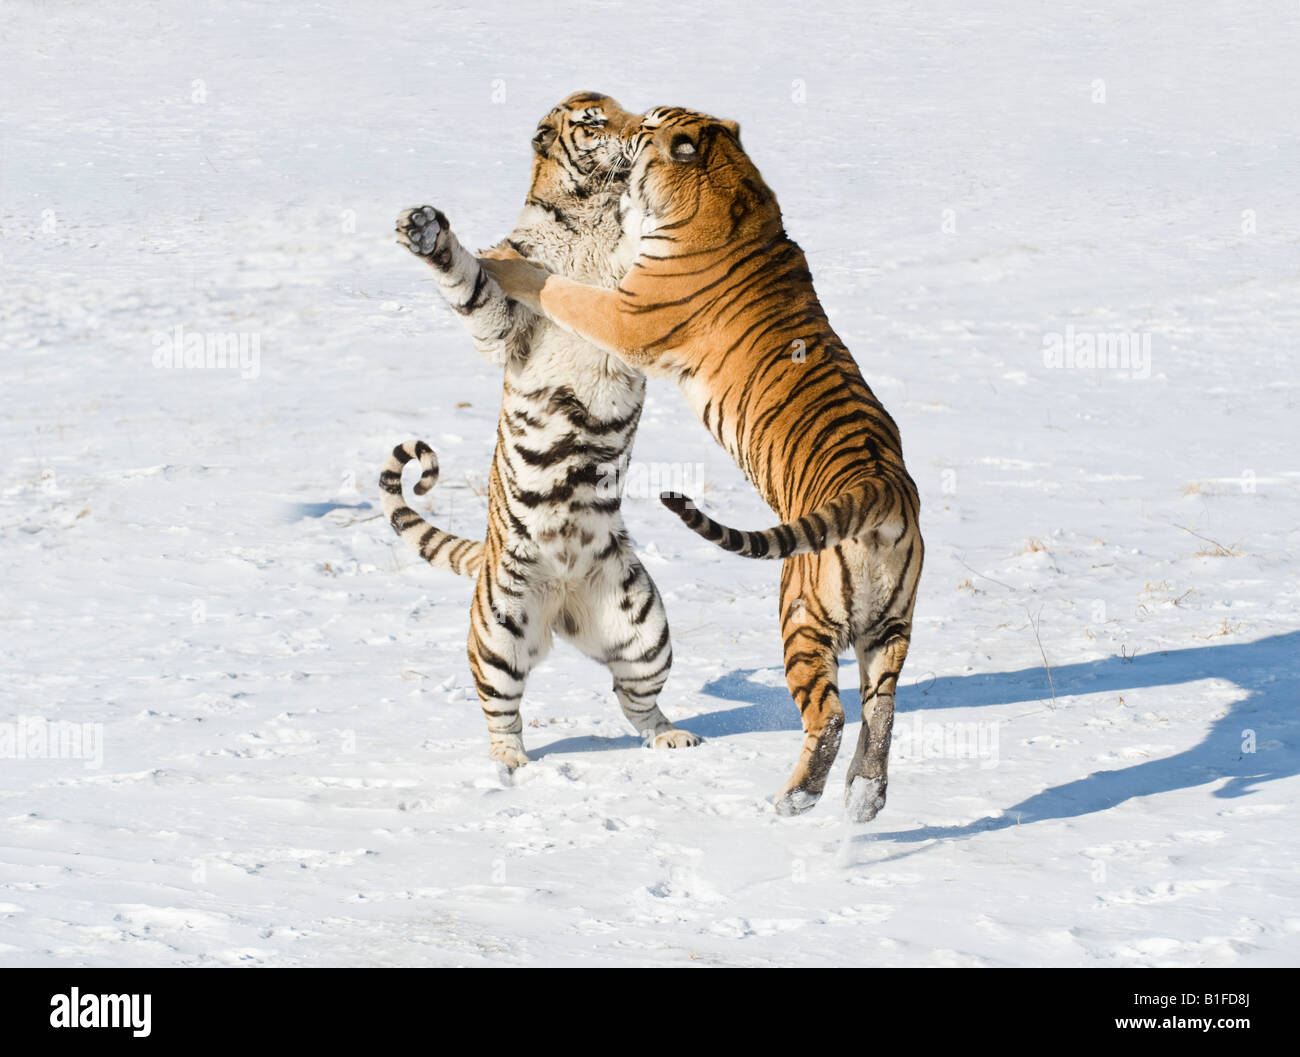 Siberian Tigers fighting in the snow China - Stock Image